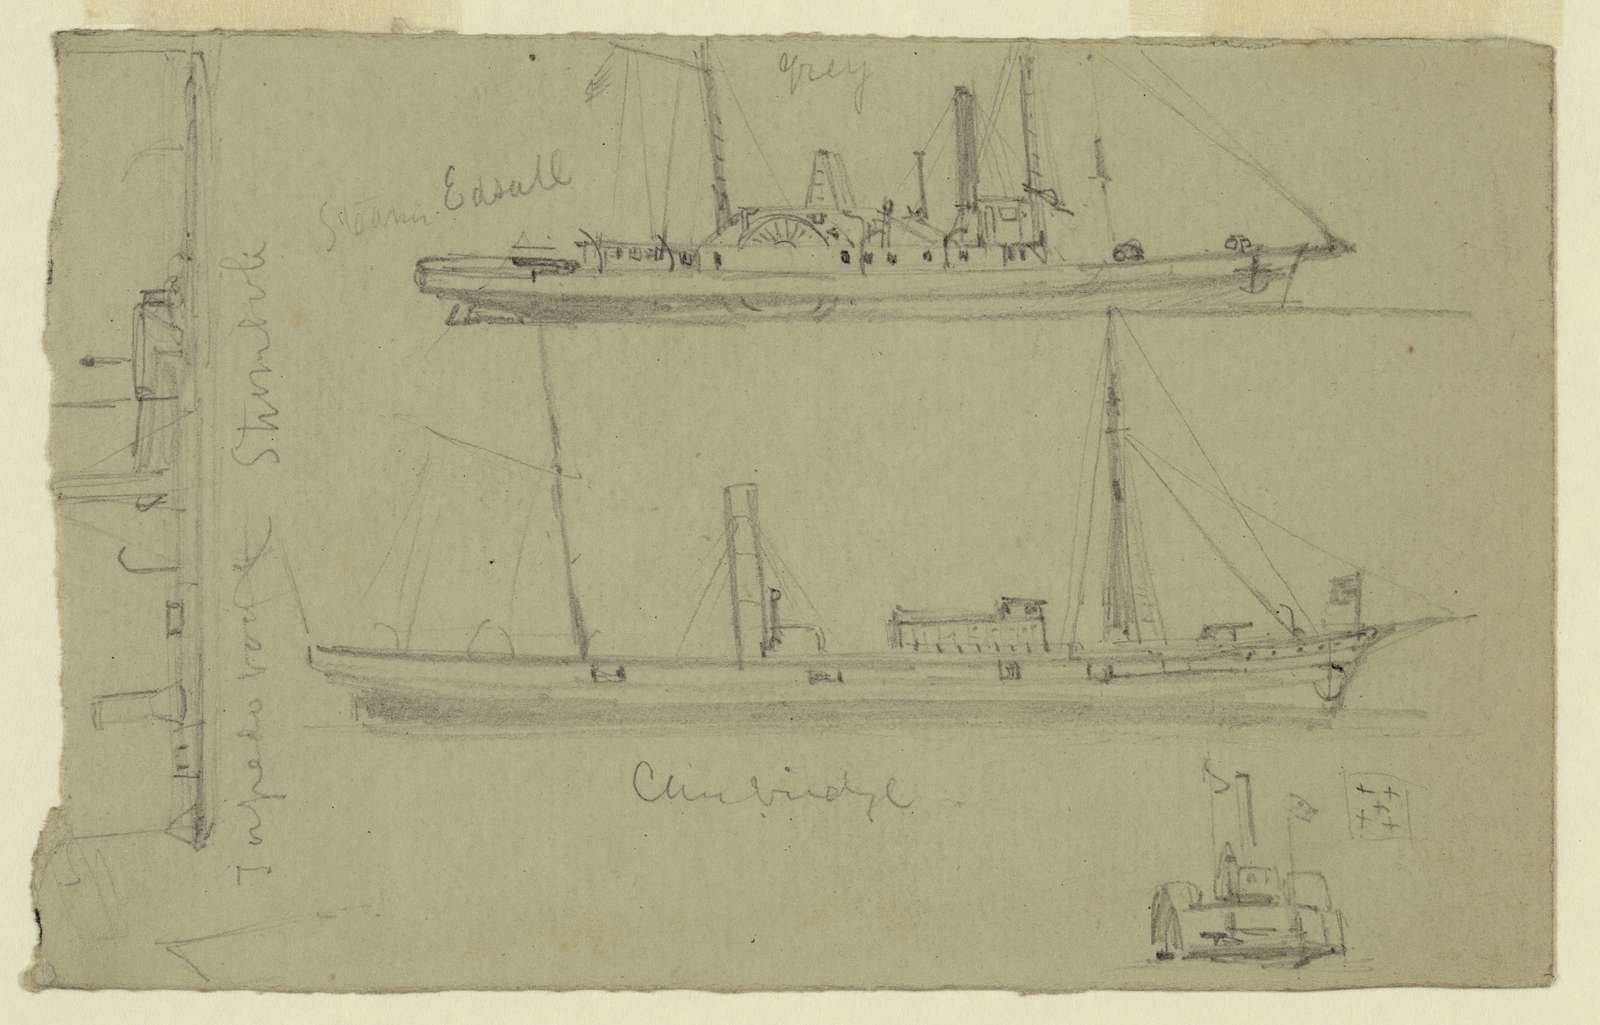 [Sketches of four ships]